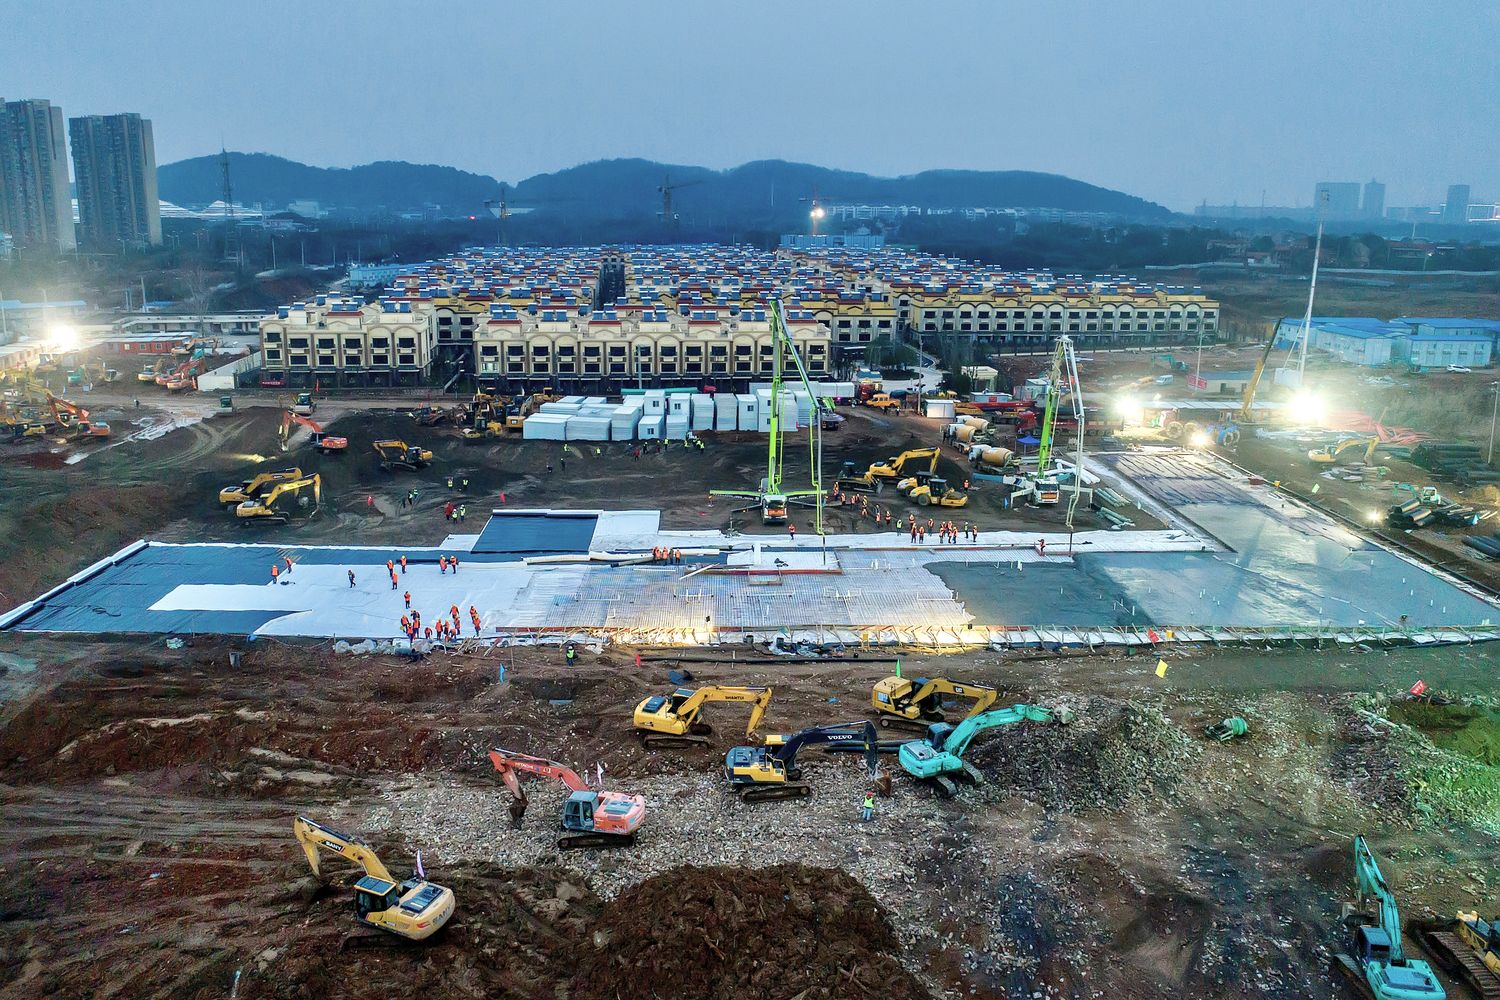 Excavators and workers are seen at the construction site where the new Huoshenshan Hospital is being built to treat patients of a new coronavirus on the outskirts of Wuhan on Jan 27. (China Daily via Reuters)